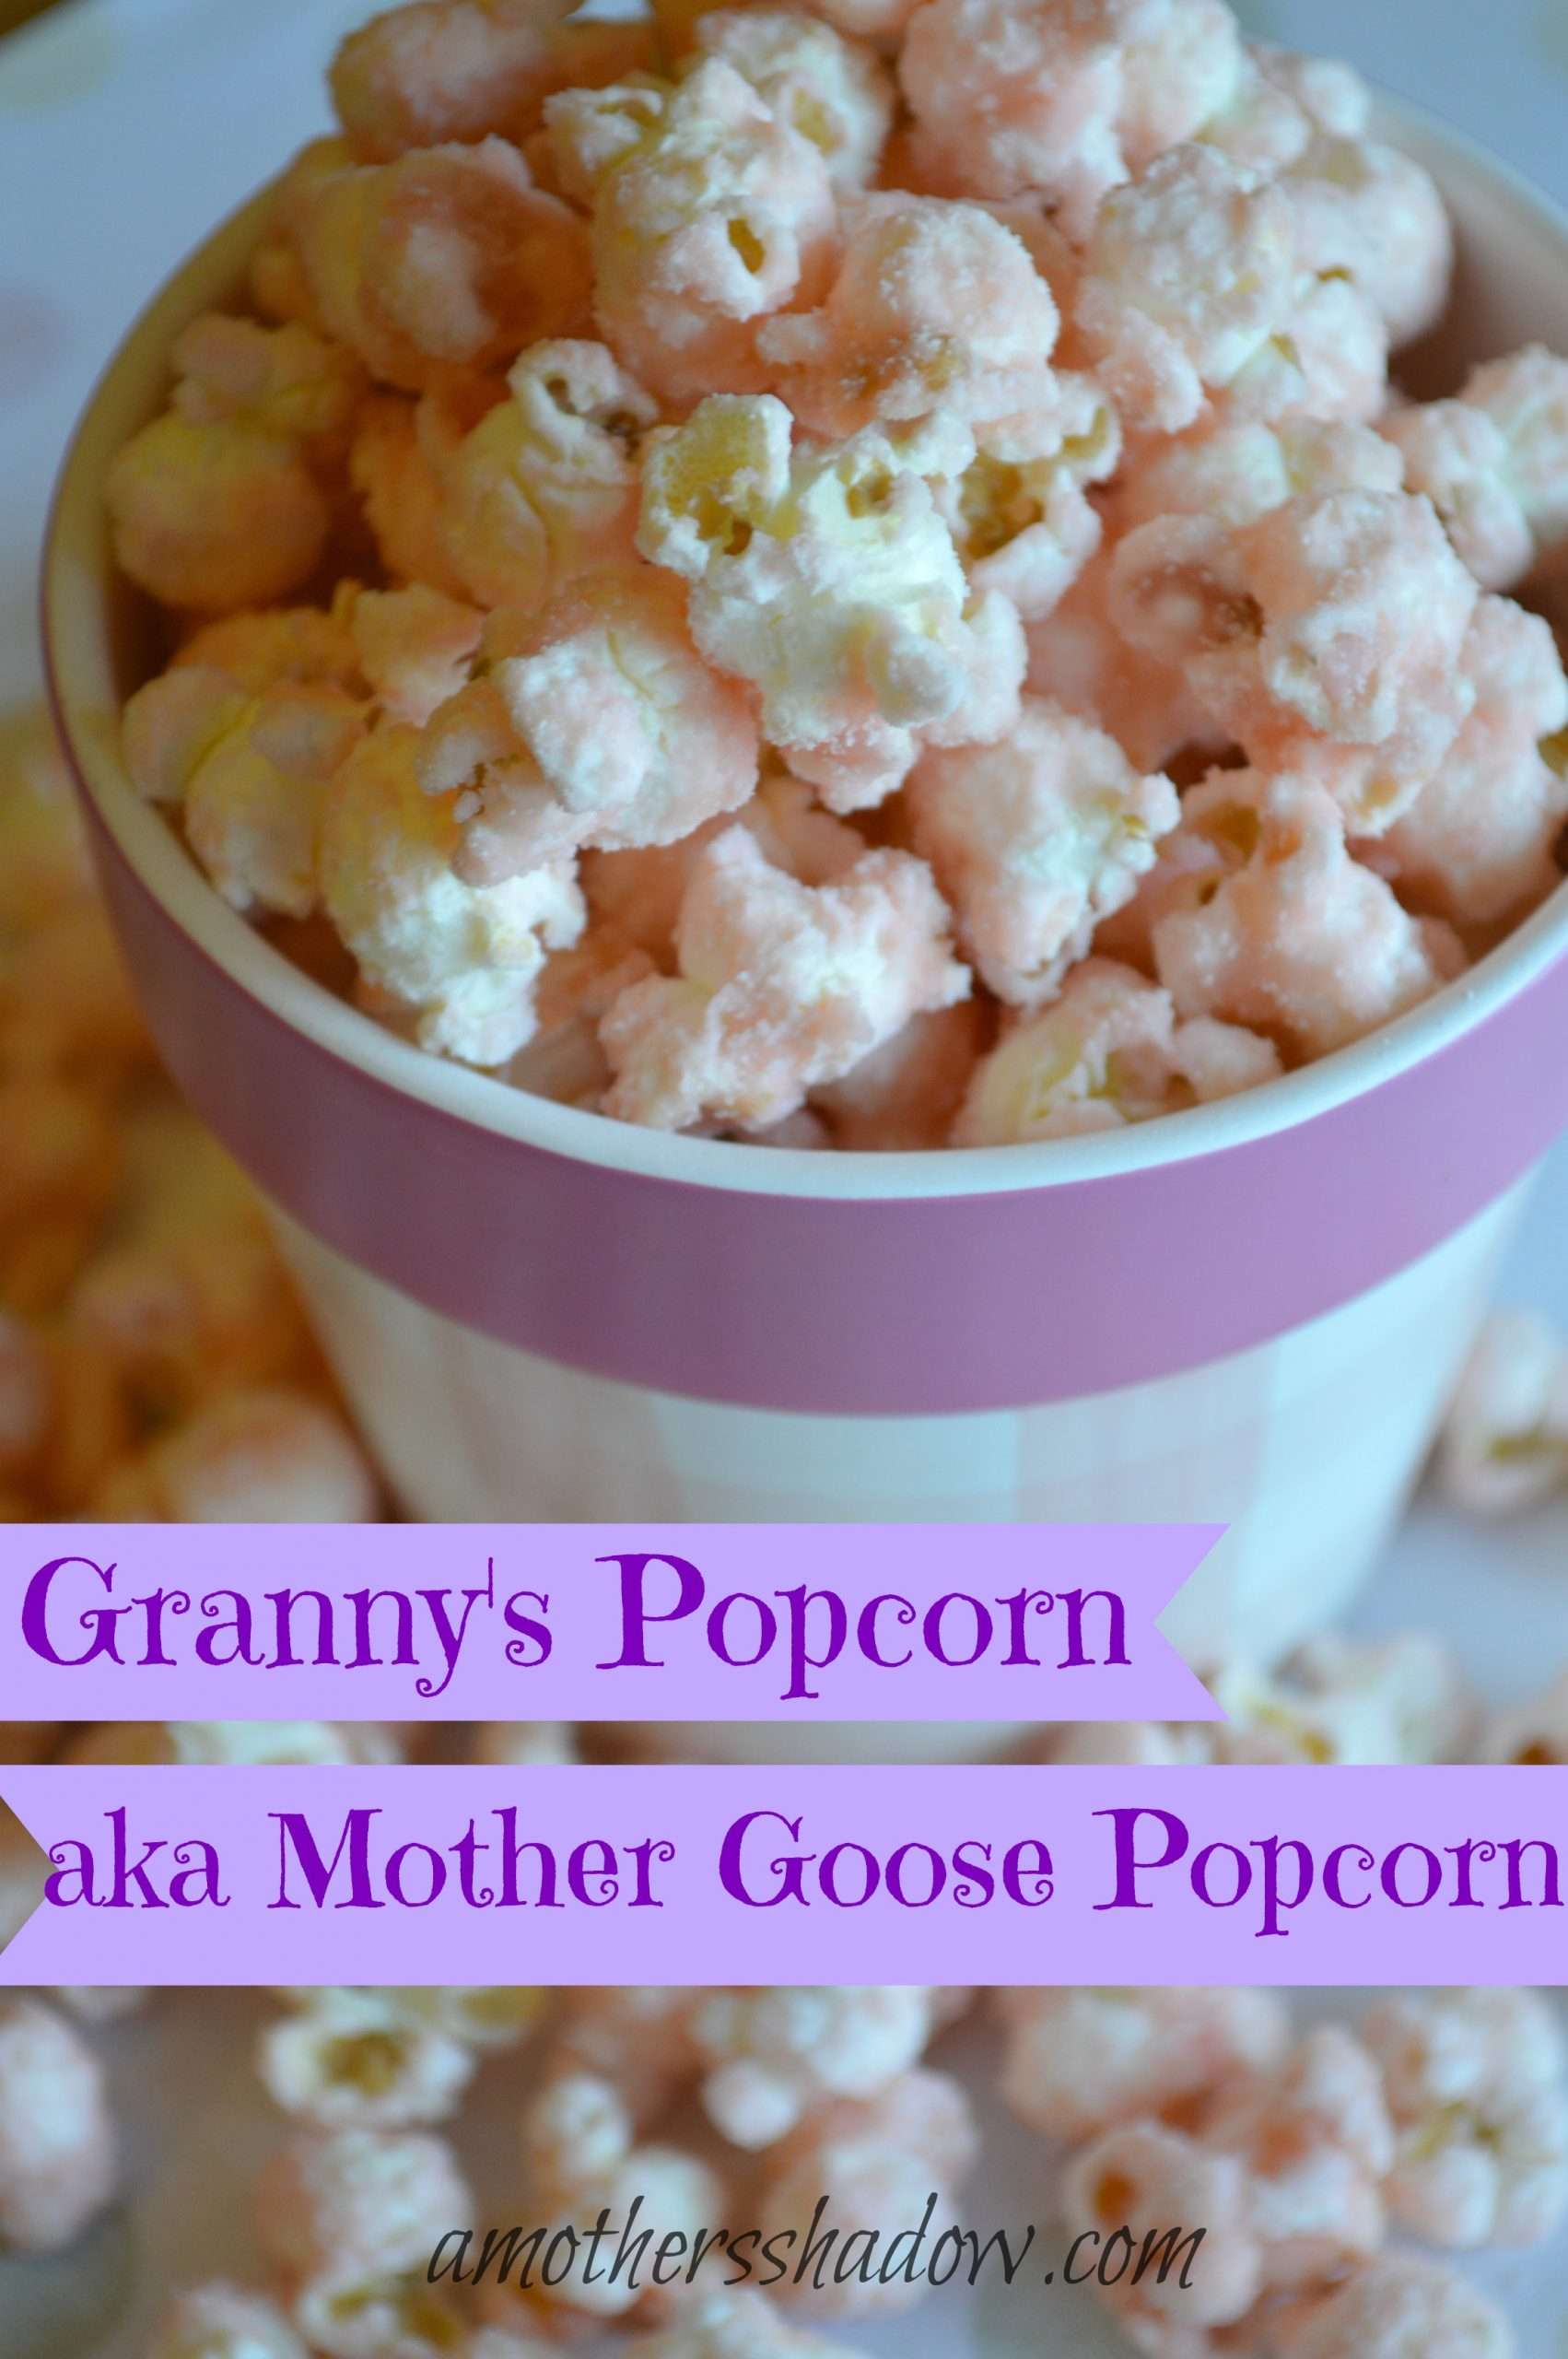 Sugar or Granny or Mother Goose Popcorn